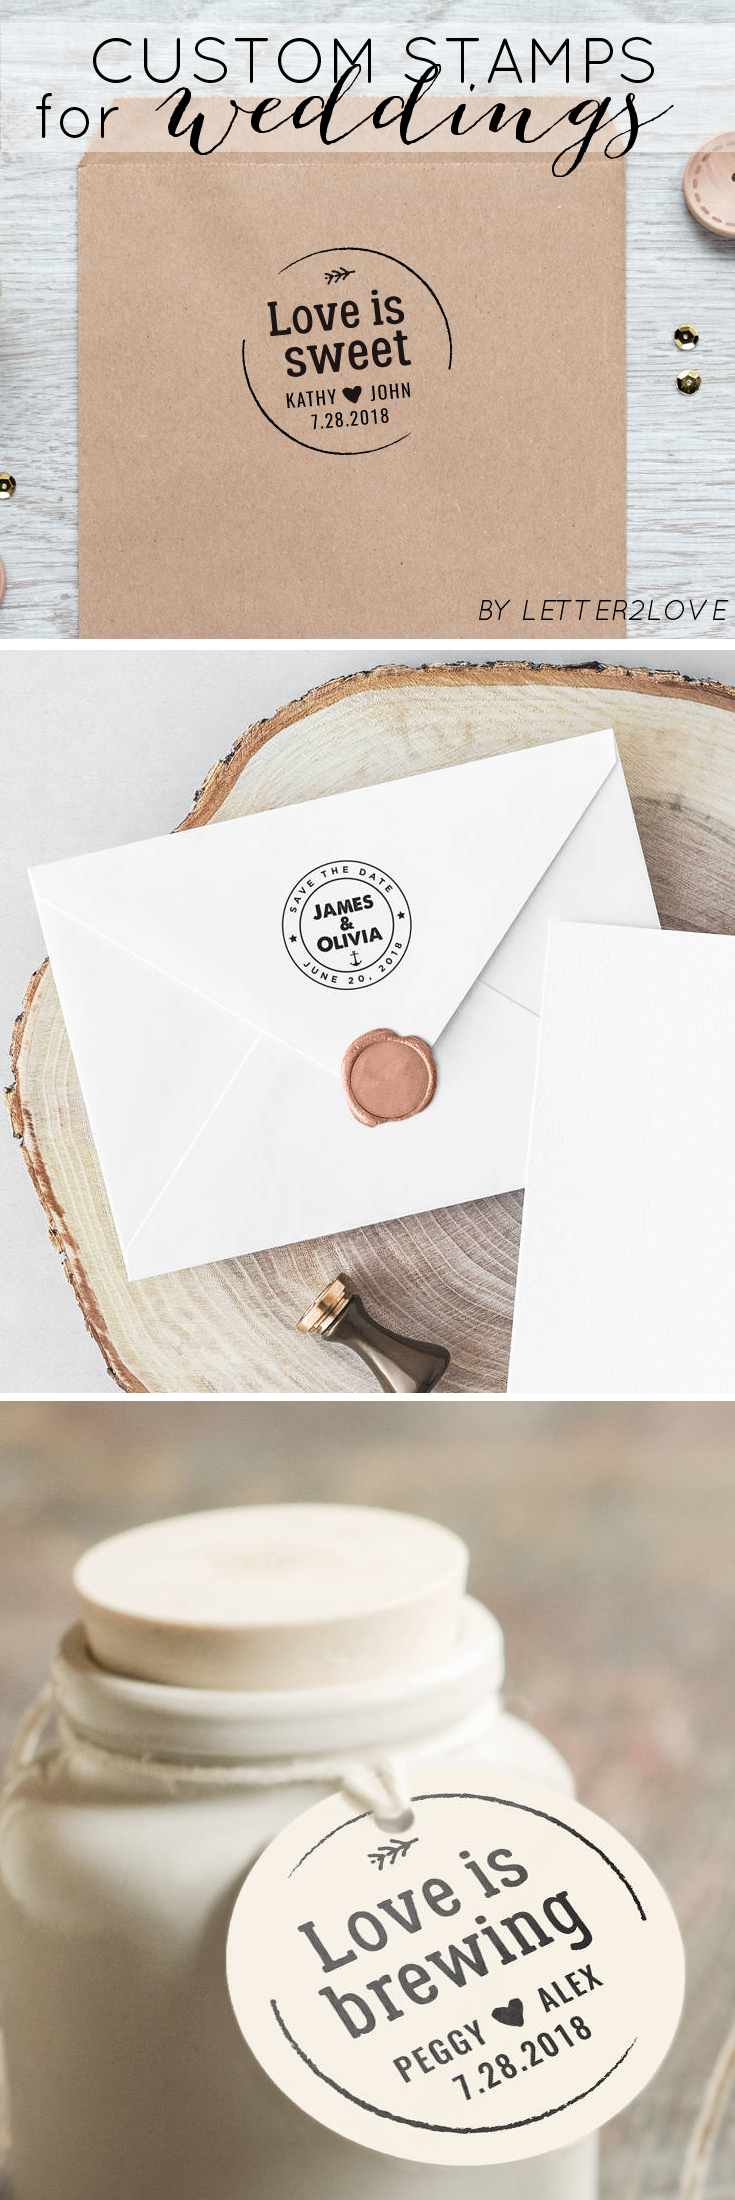 Make your own wedding favors with these custom wedding stamps ...